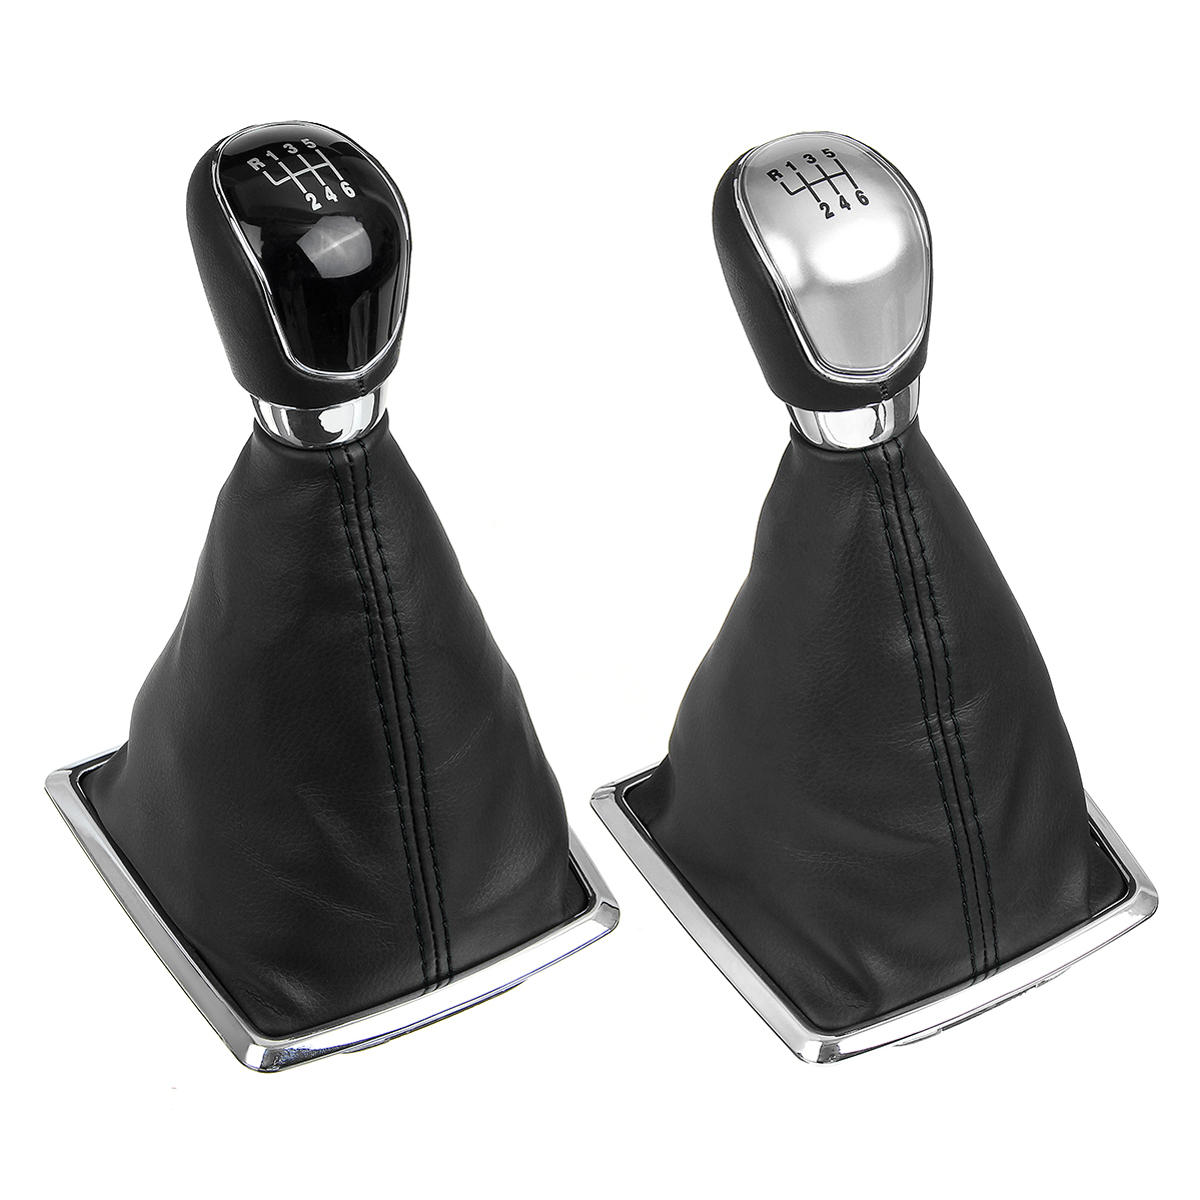 6 Speed MT Gear Stick Shift Knob with Dust Boot Cover For Ford Focus 2005-2012